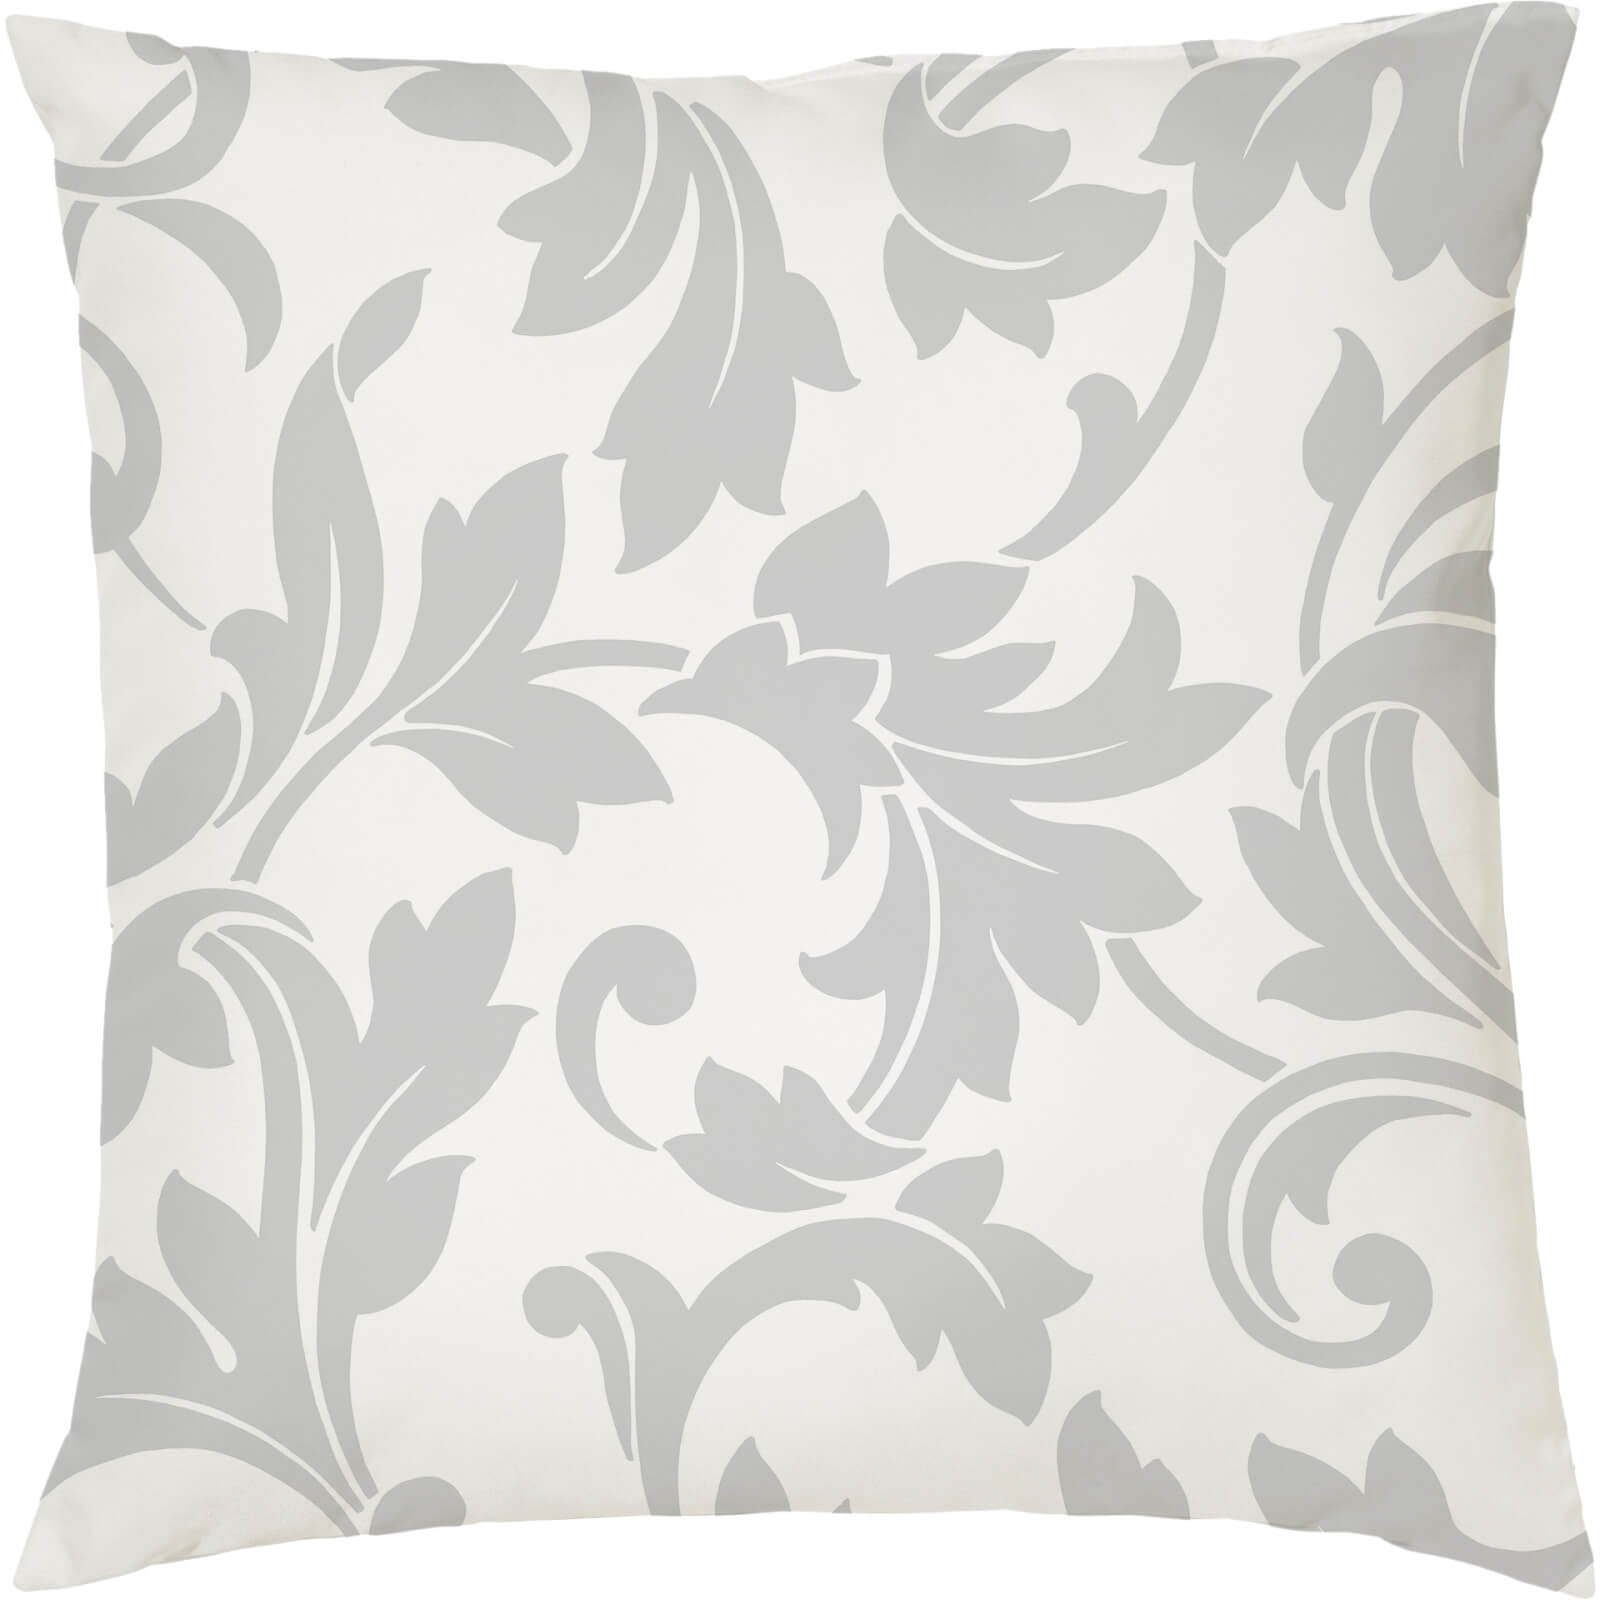 Regal Reverse Cushion - White (45 x 45cm)